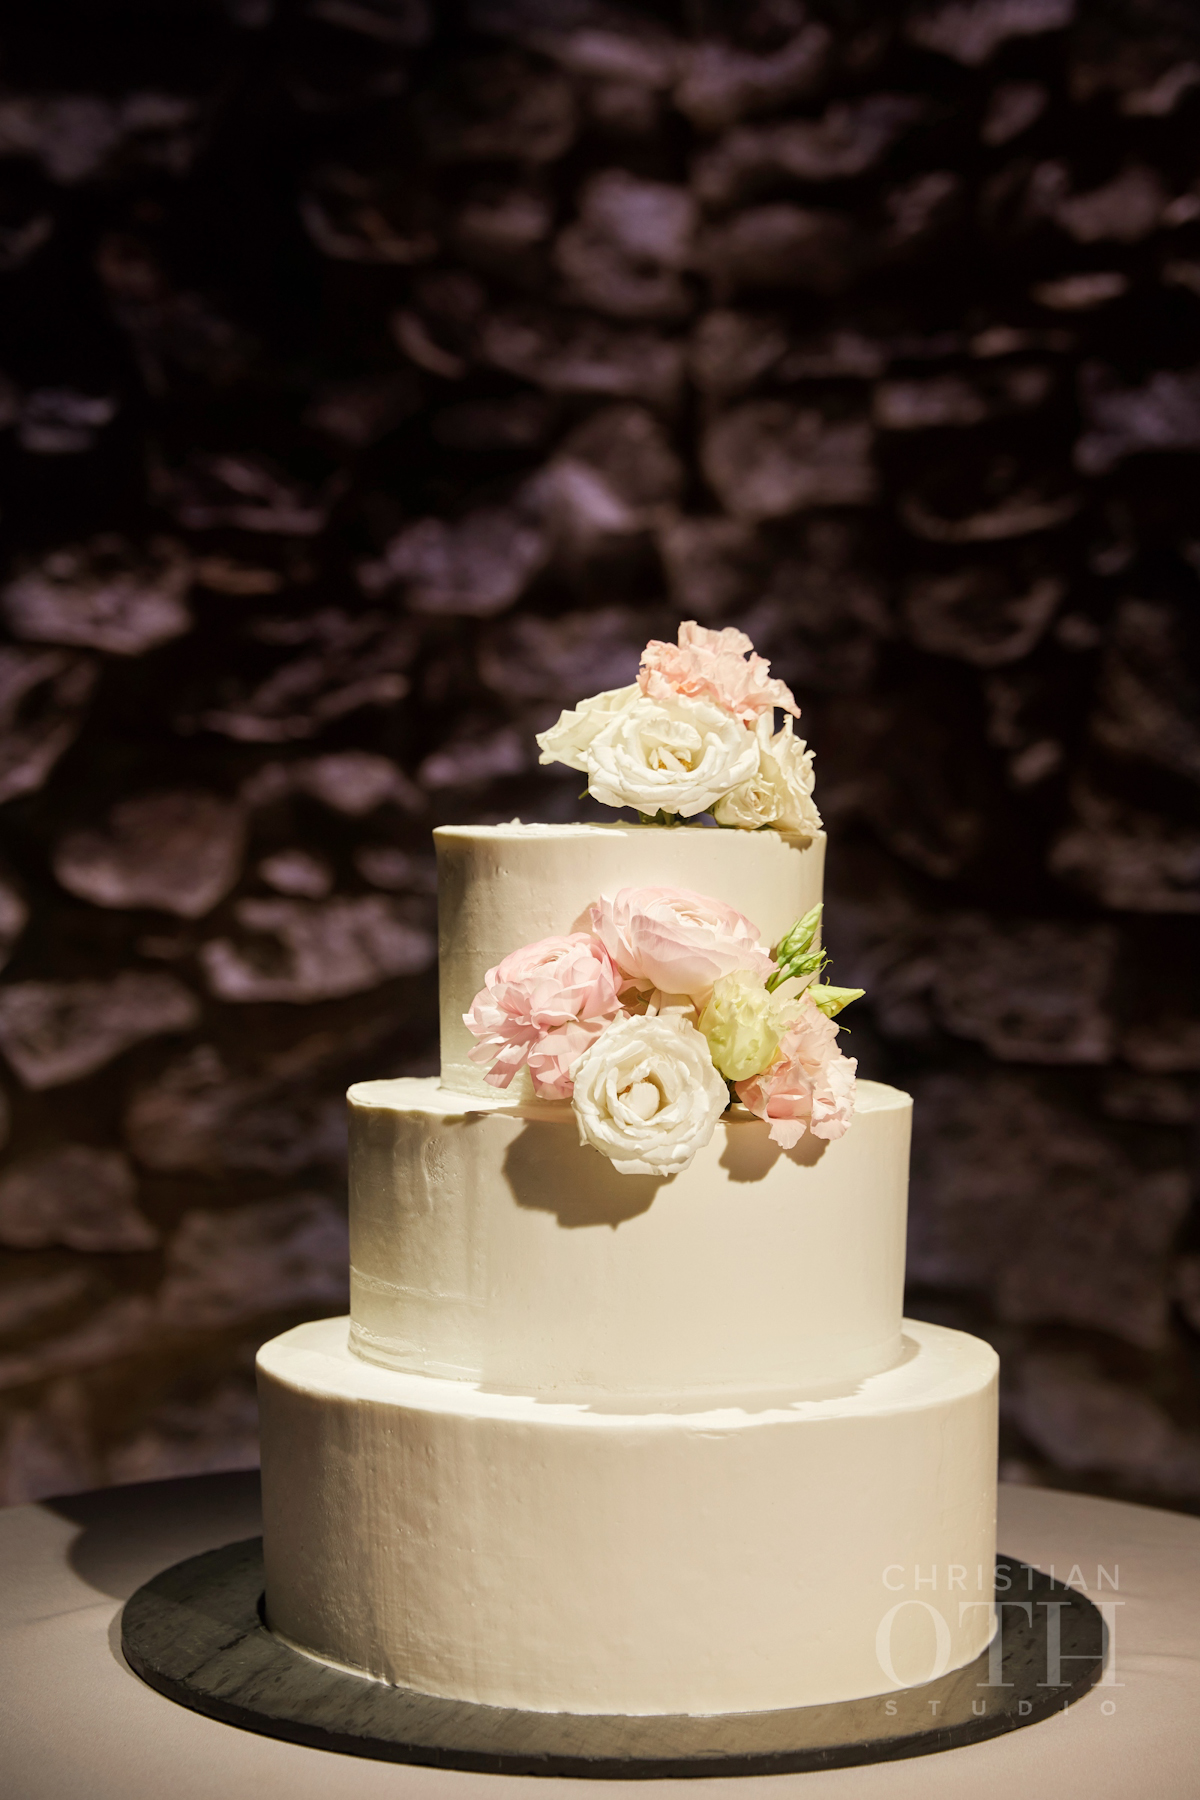 Blue Hill at Stone Barns wedding cake with buttercream and fresh flowers